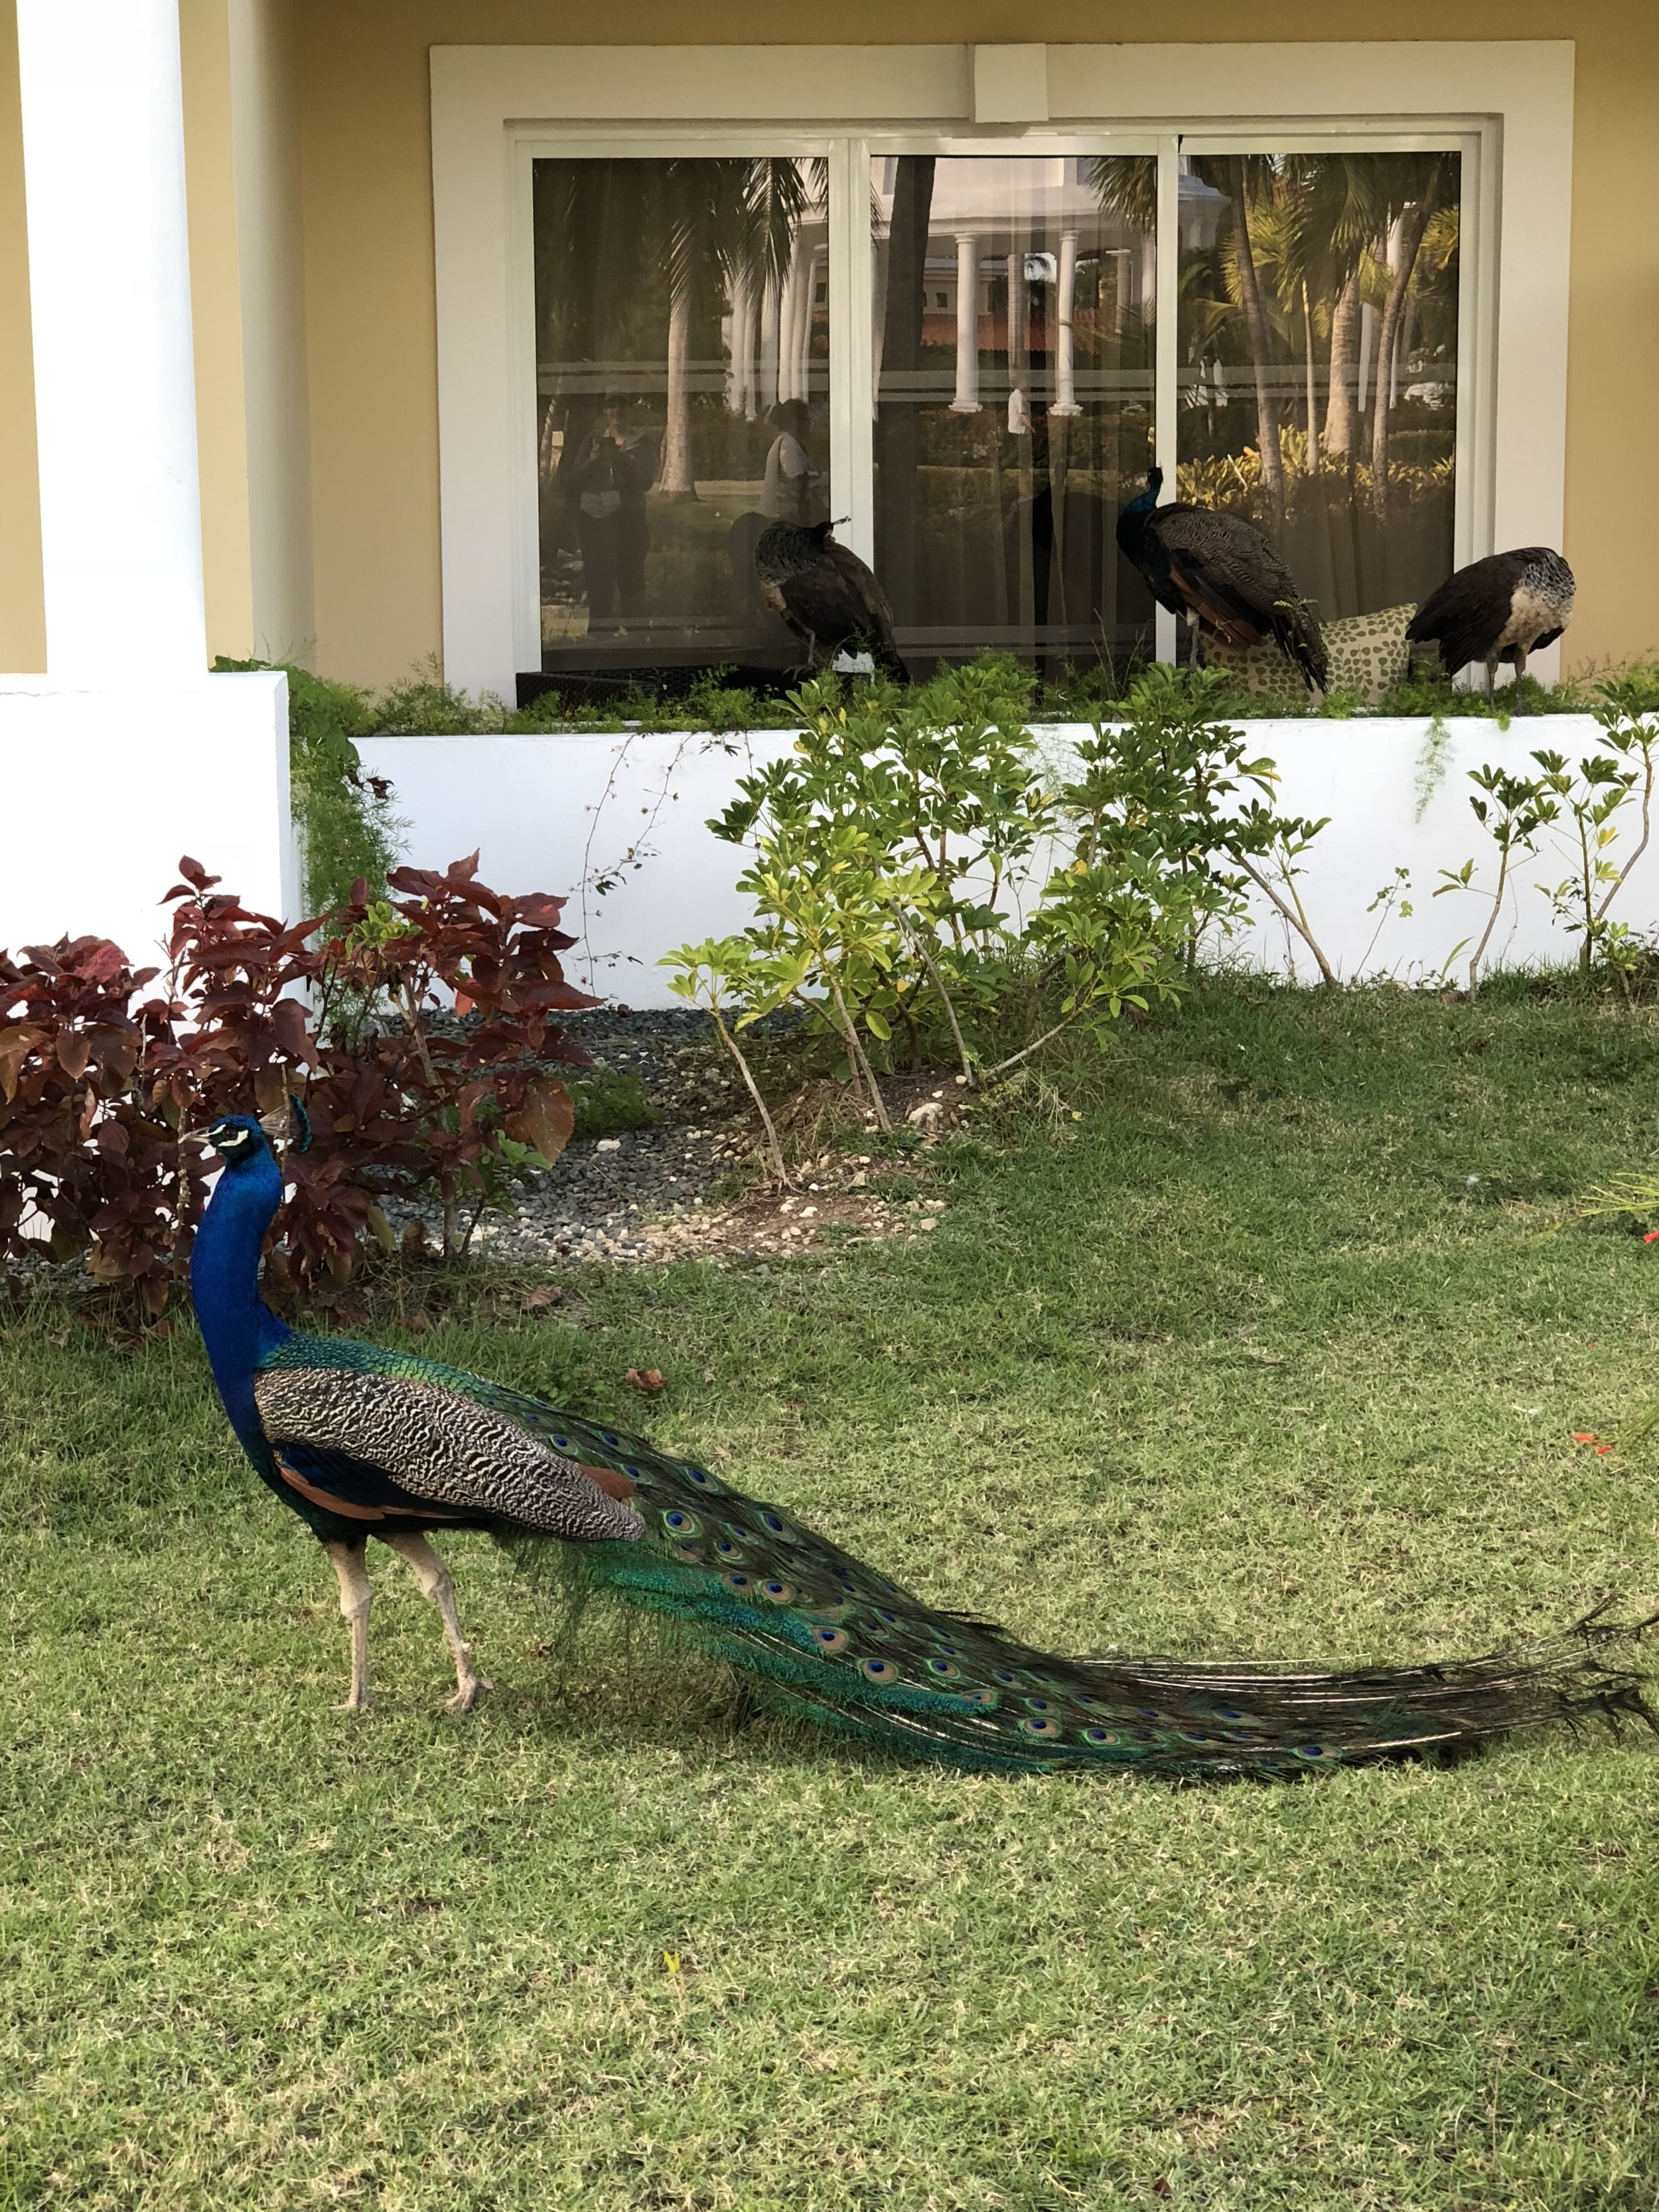 Lots of local Peacocks to see.